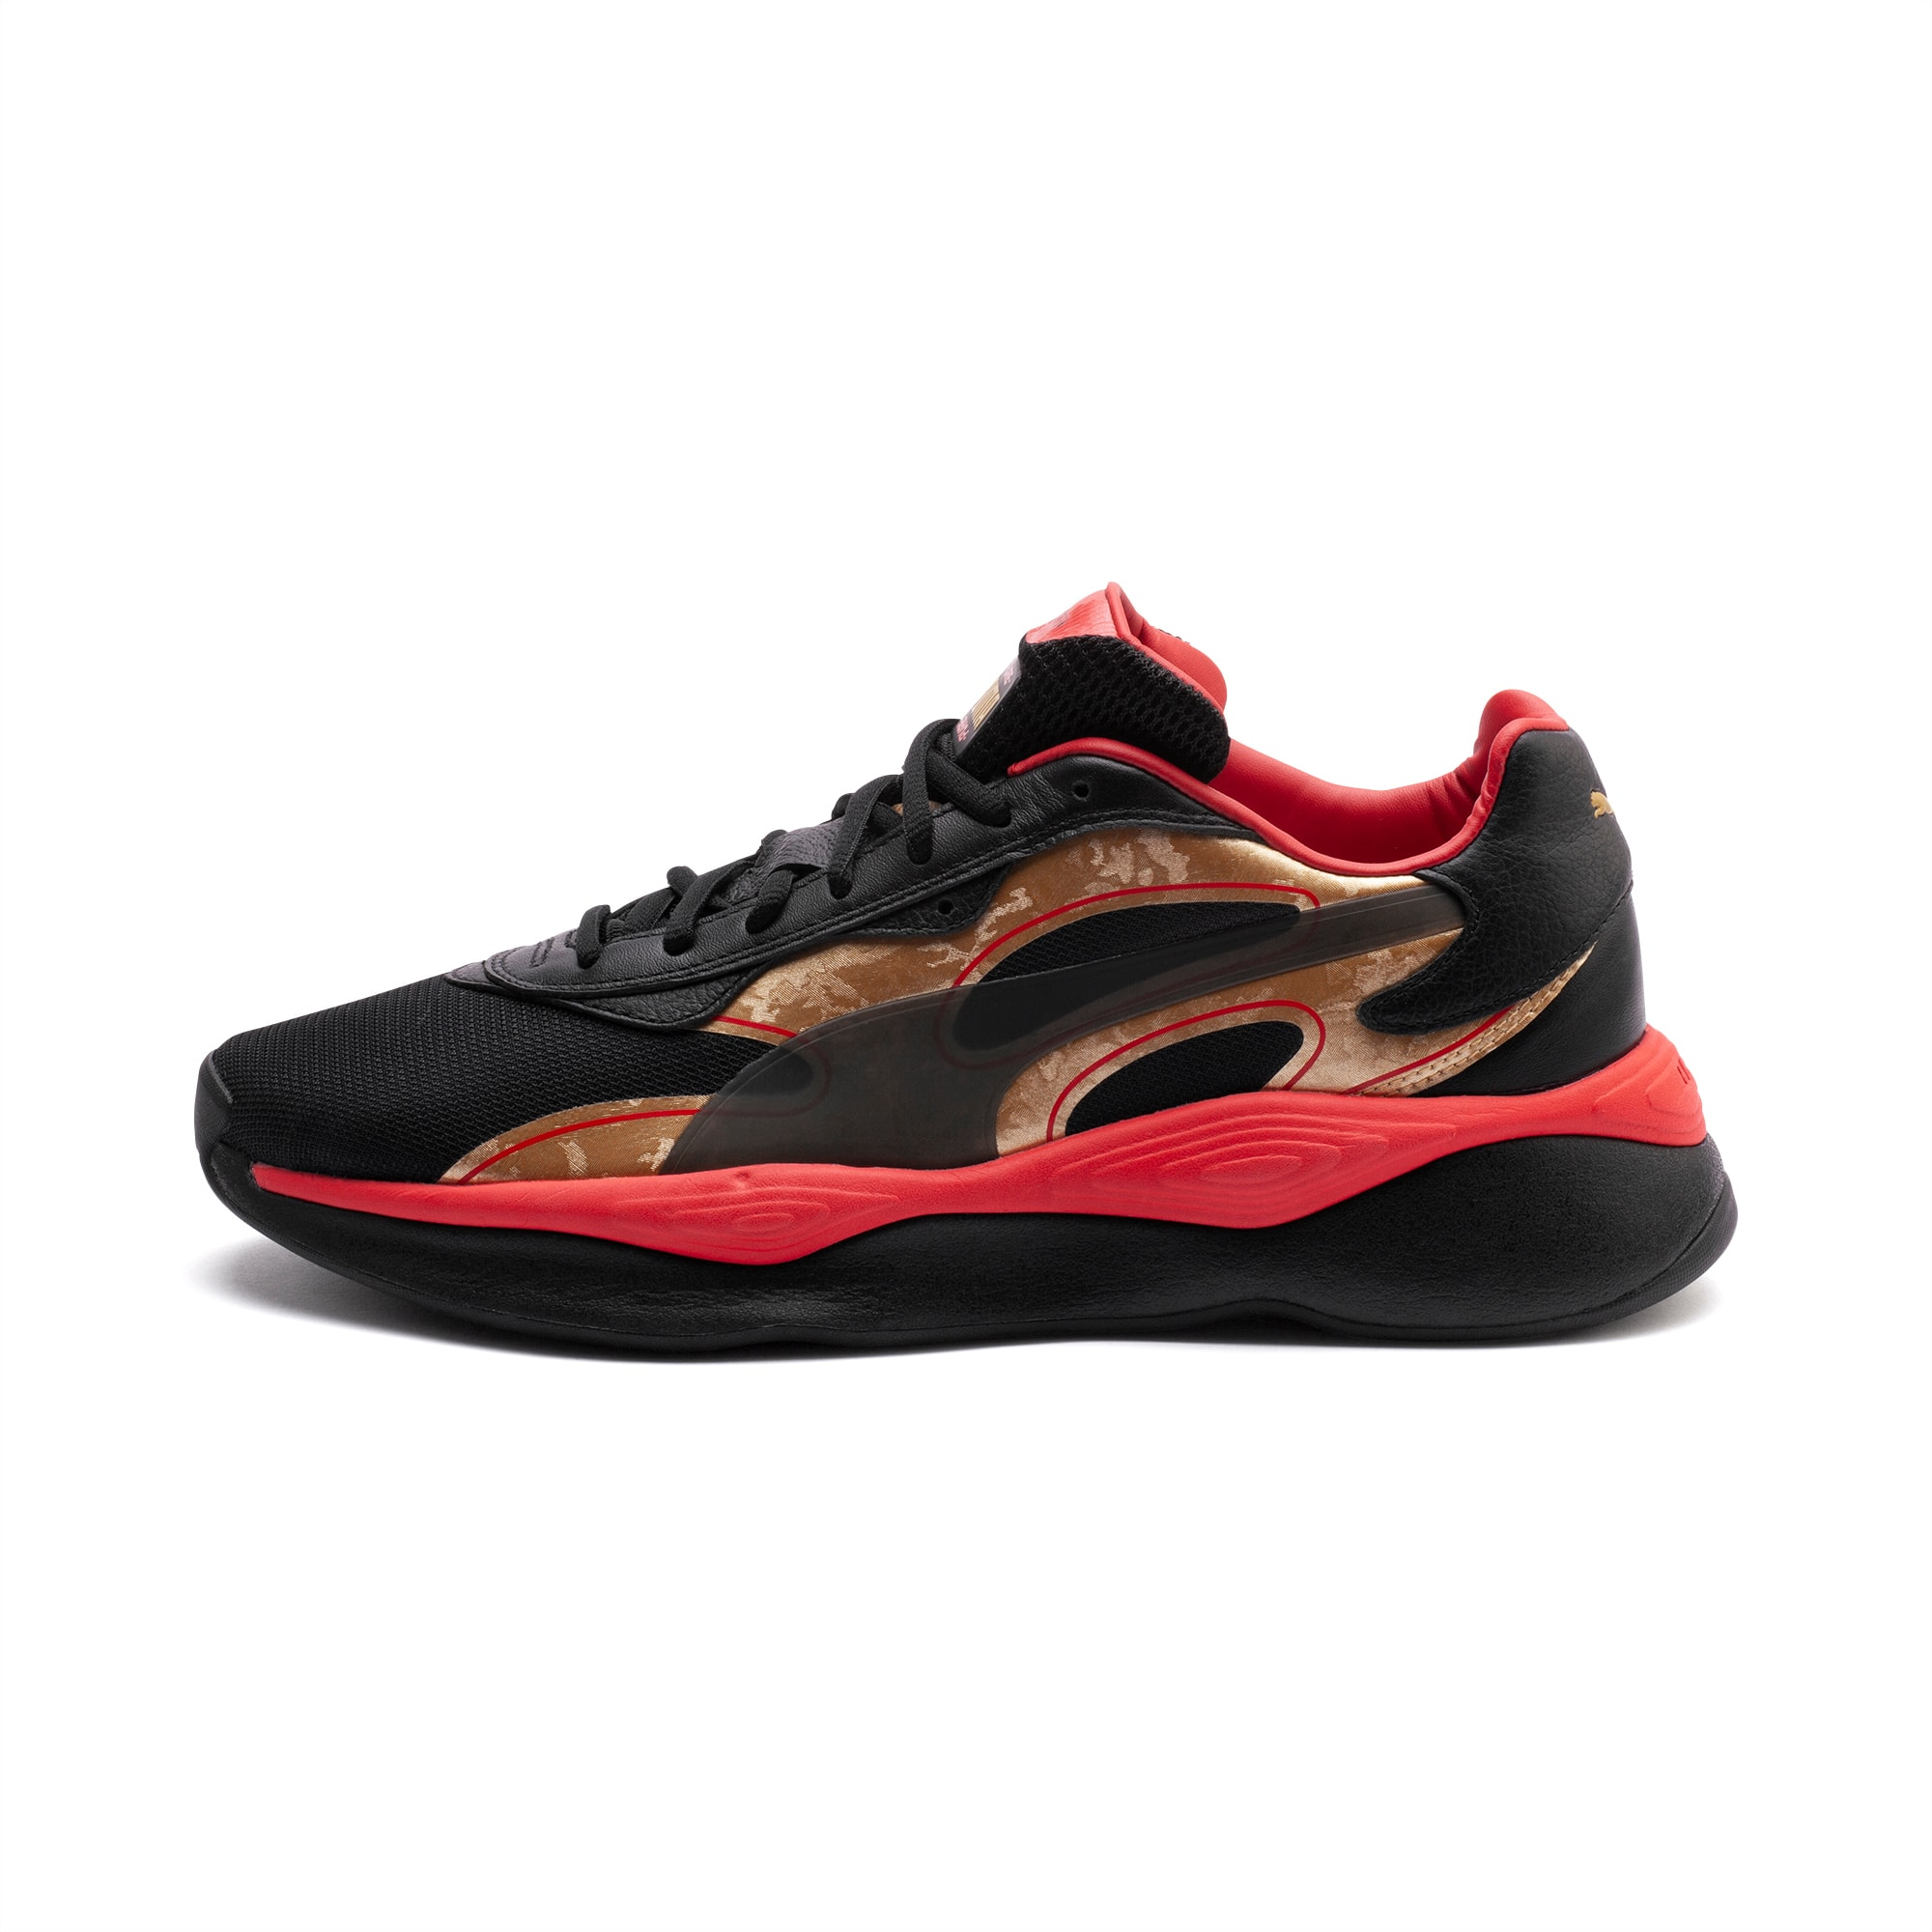 Basket RS PURE Chinese New Year